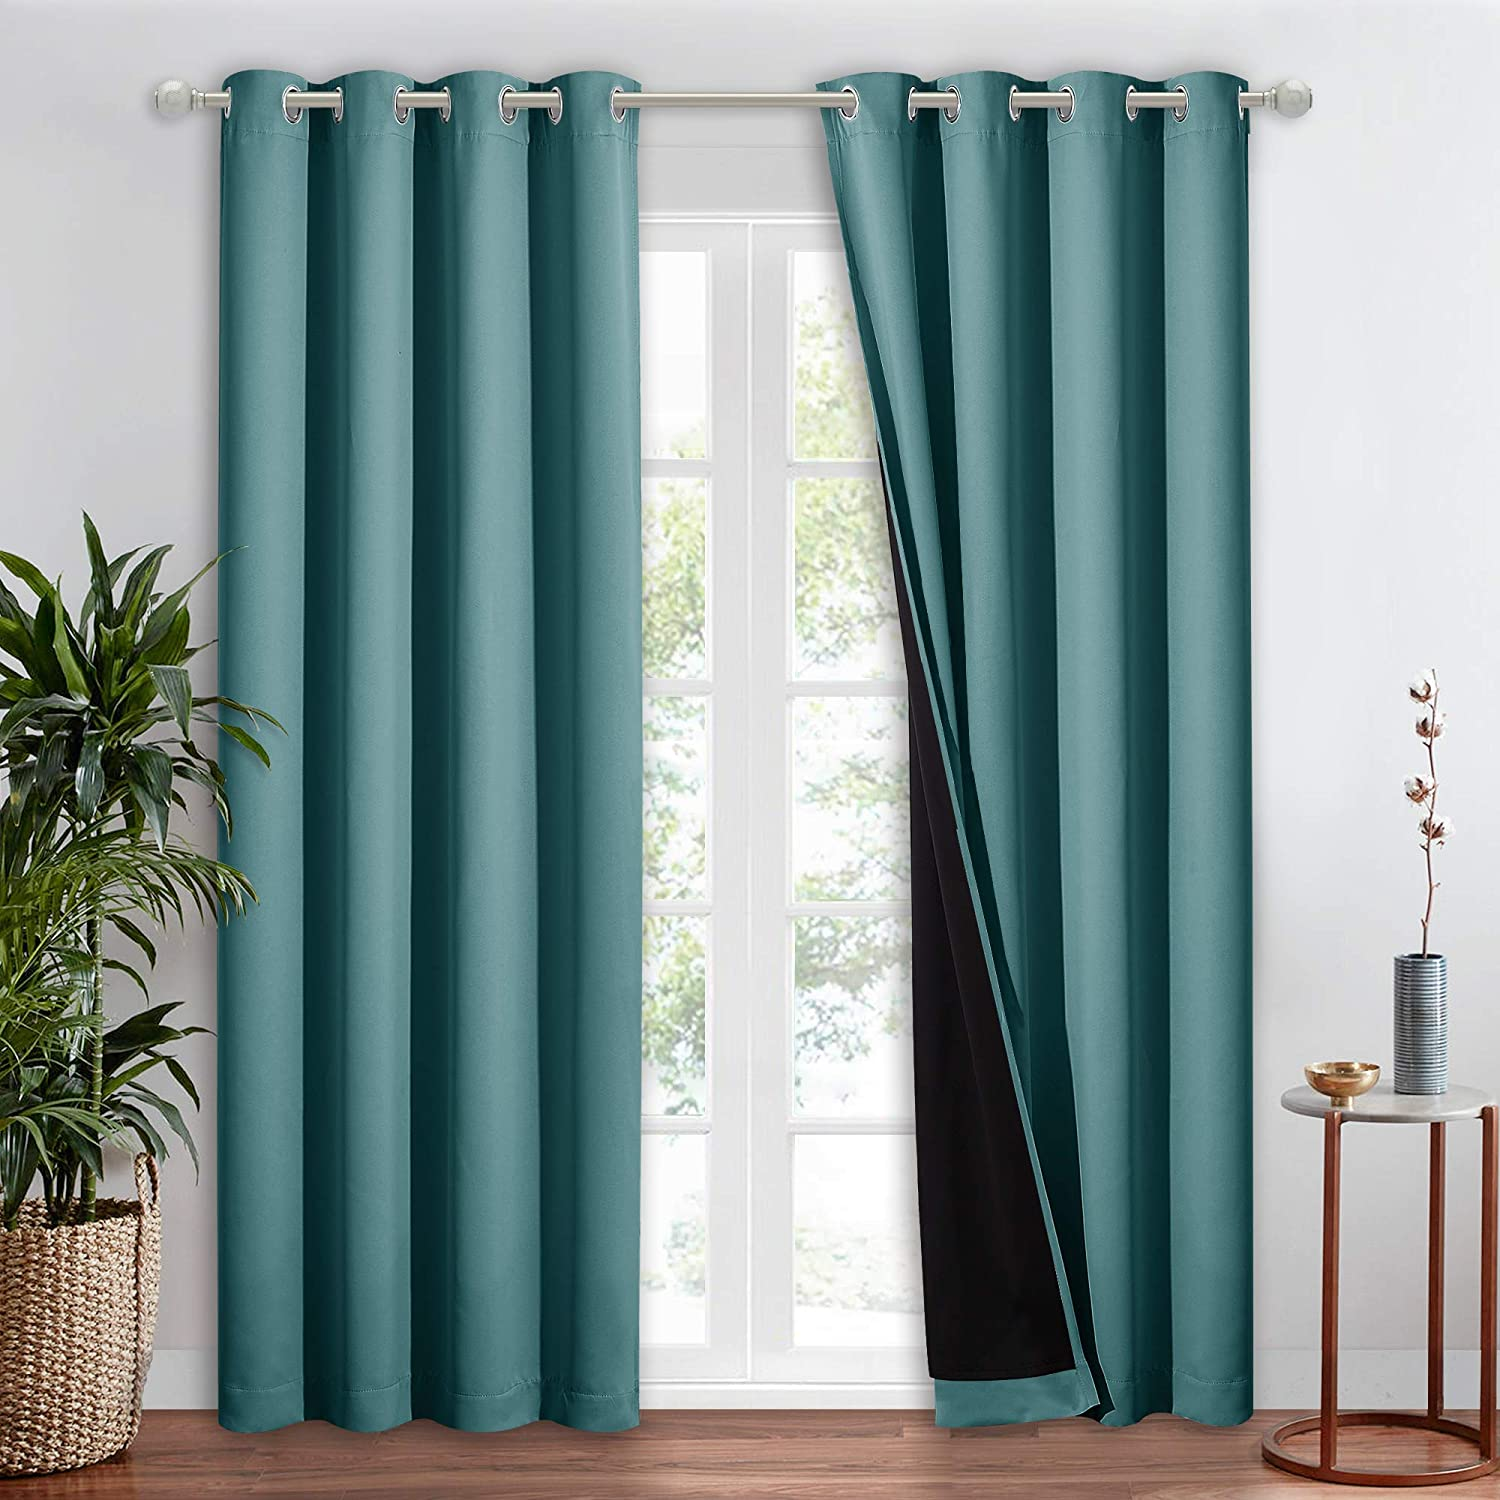 NICETOWN 100% Blackout Blind, Laundry Room Decor Window Treatment Curtains, Thermal Insulated Energy Smart Drape and Drapery for Villa, Hall and Studio, Sea Teal, 1 PC, 52 inches x 95 inches